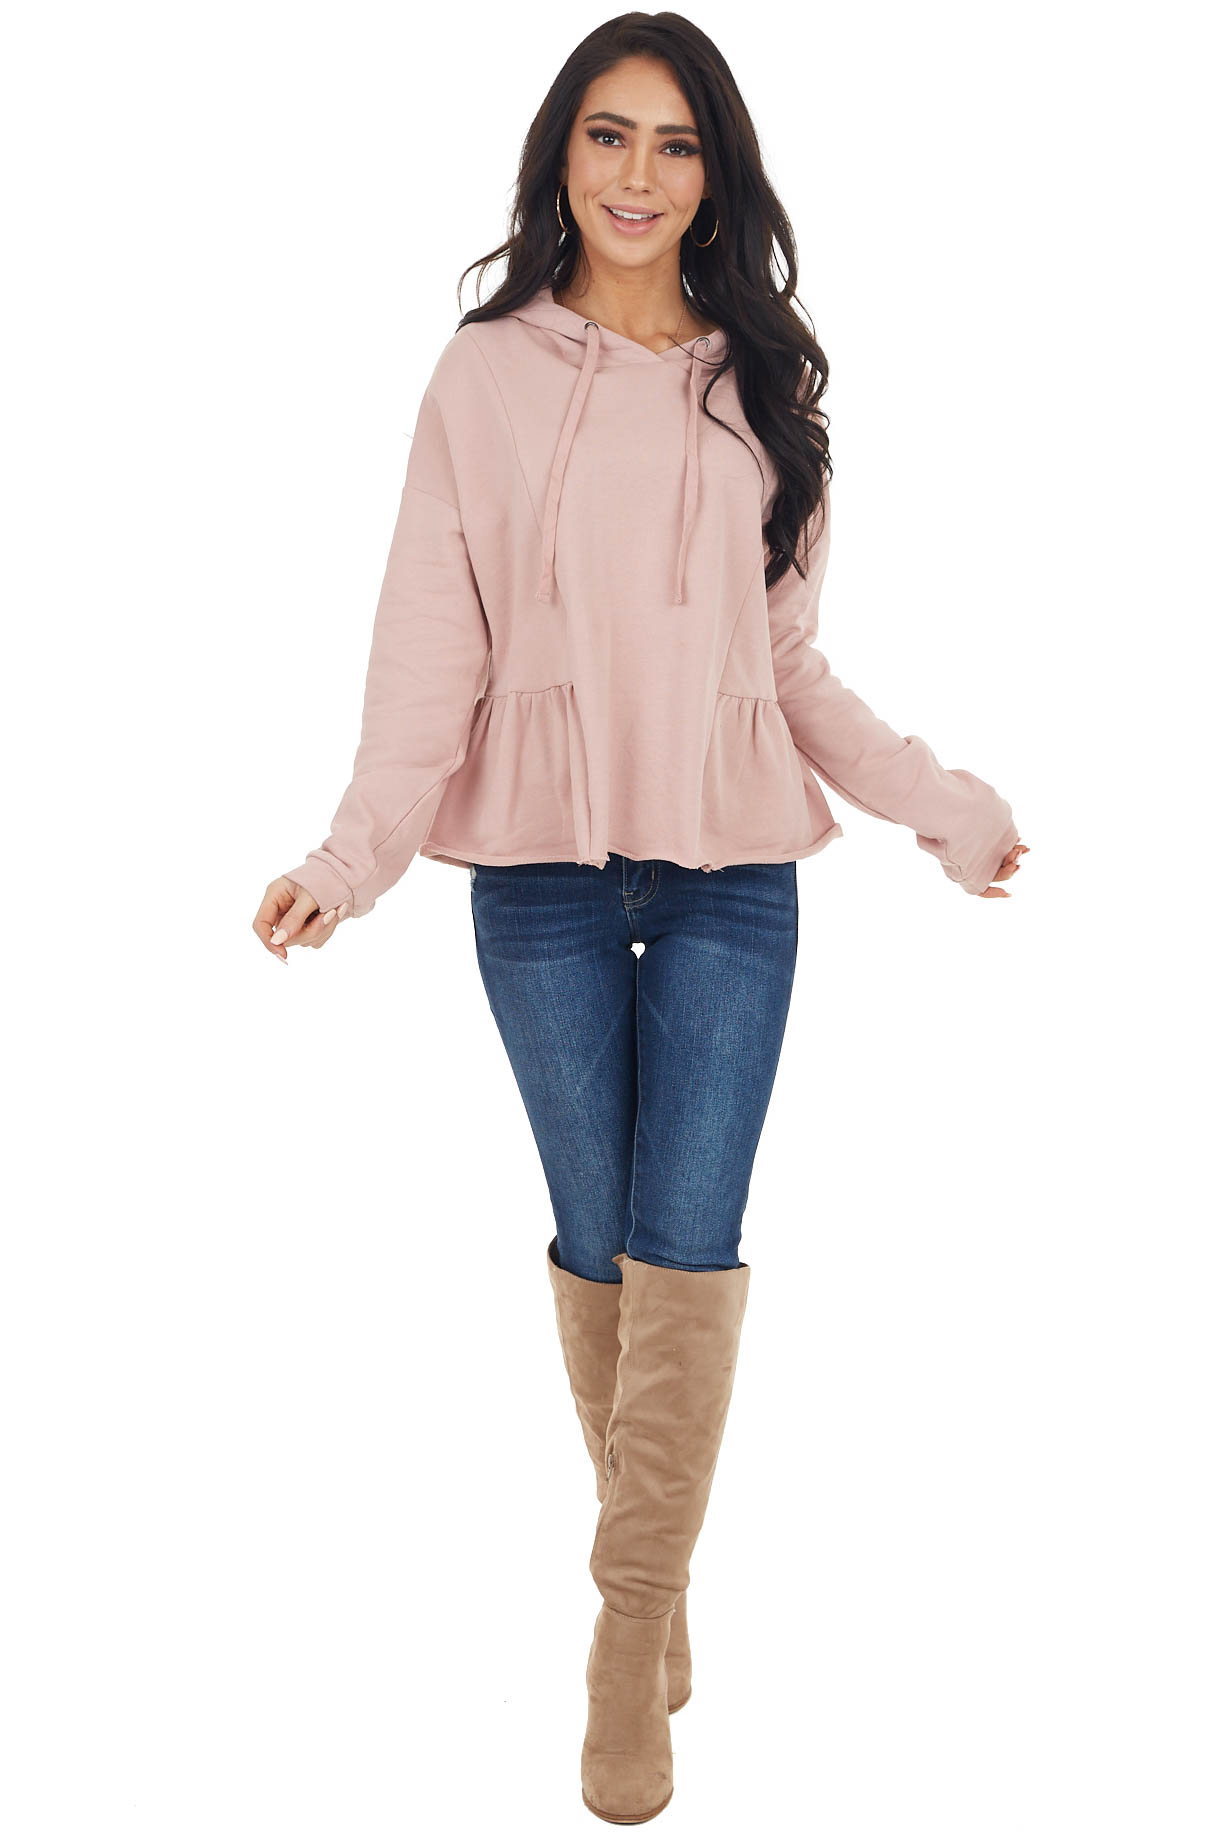 Dusty Rose Hooded Top with Drawstrings and Peplum Detail